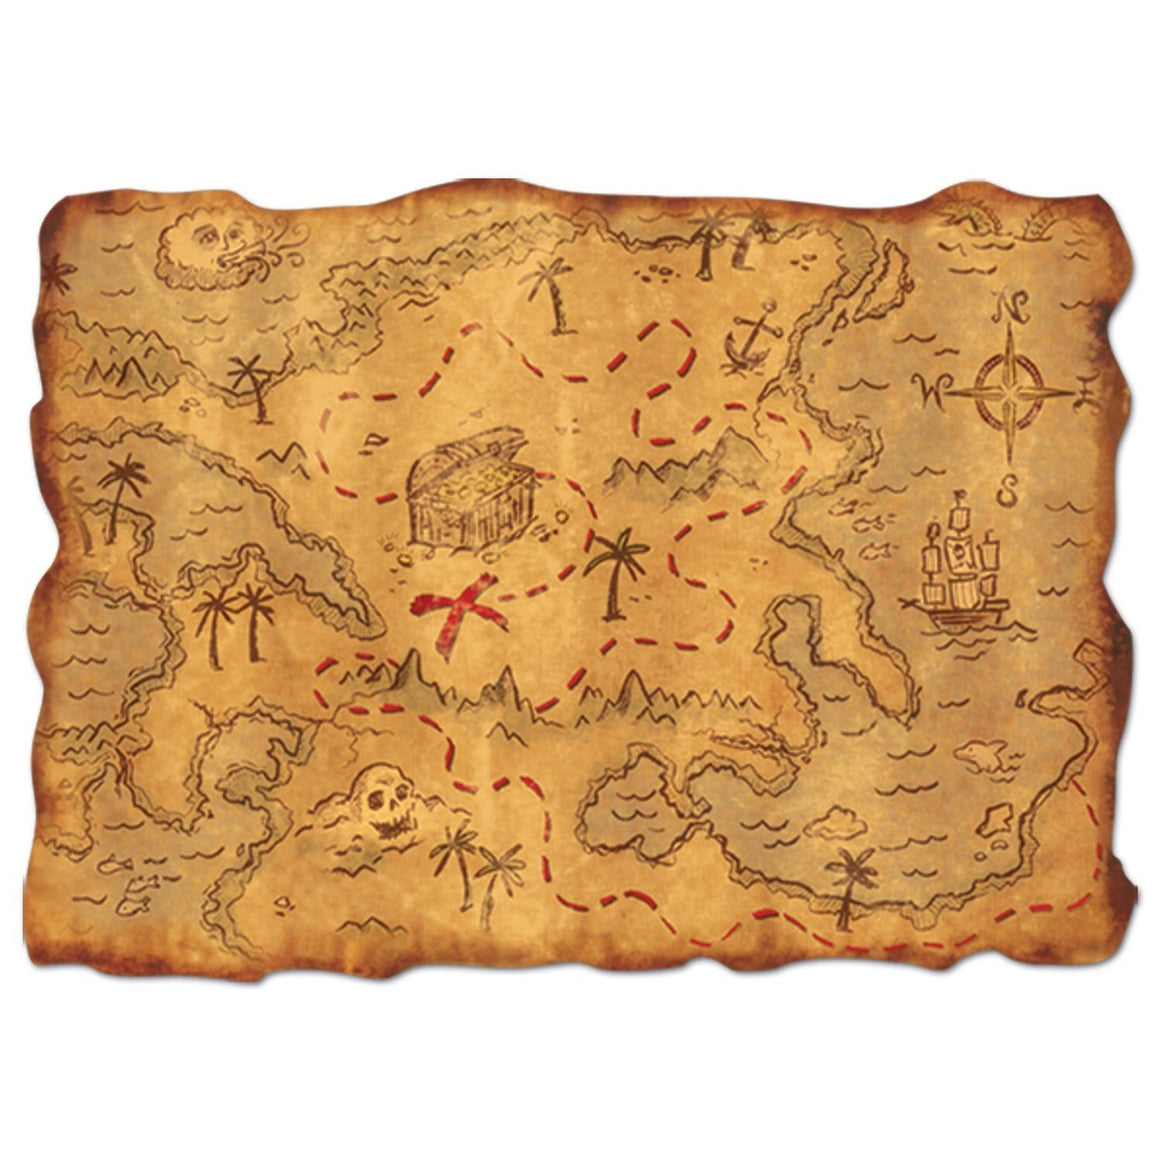 DECORATION - PIRATE'S TREASURE MAP